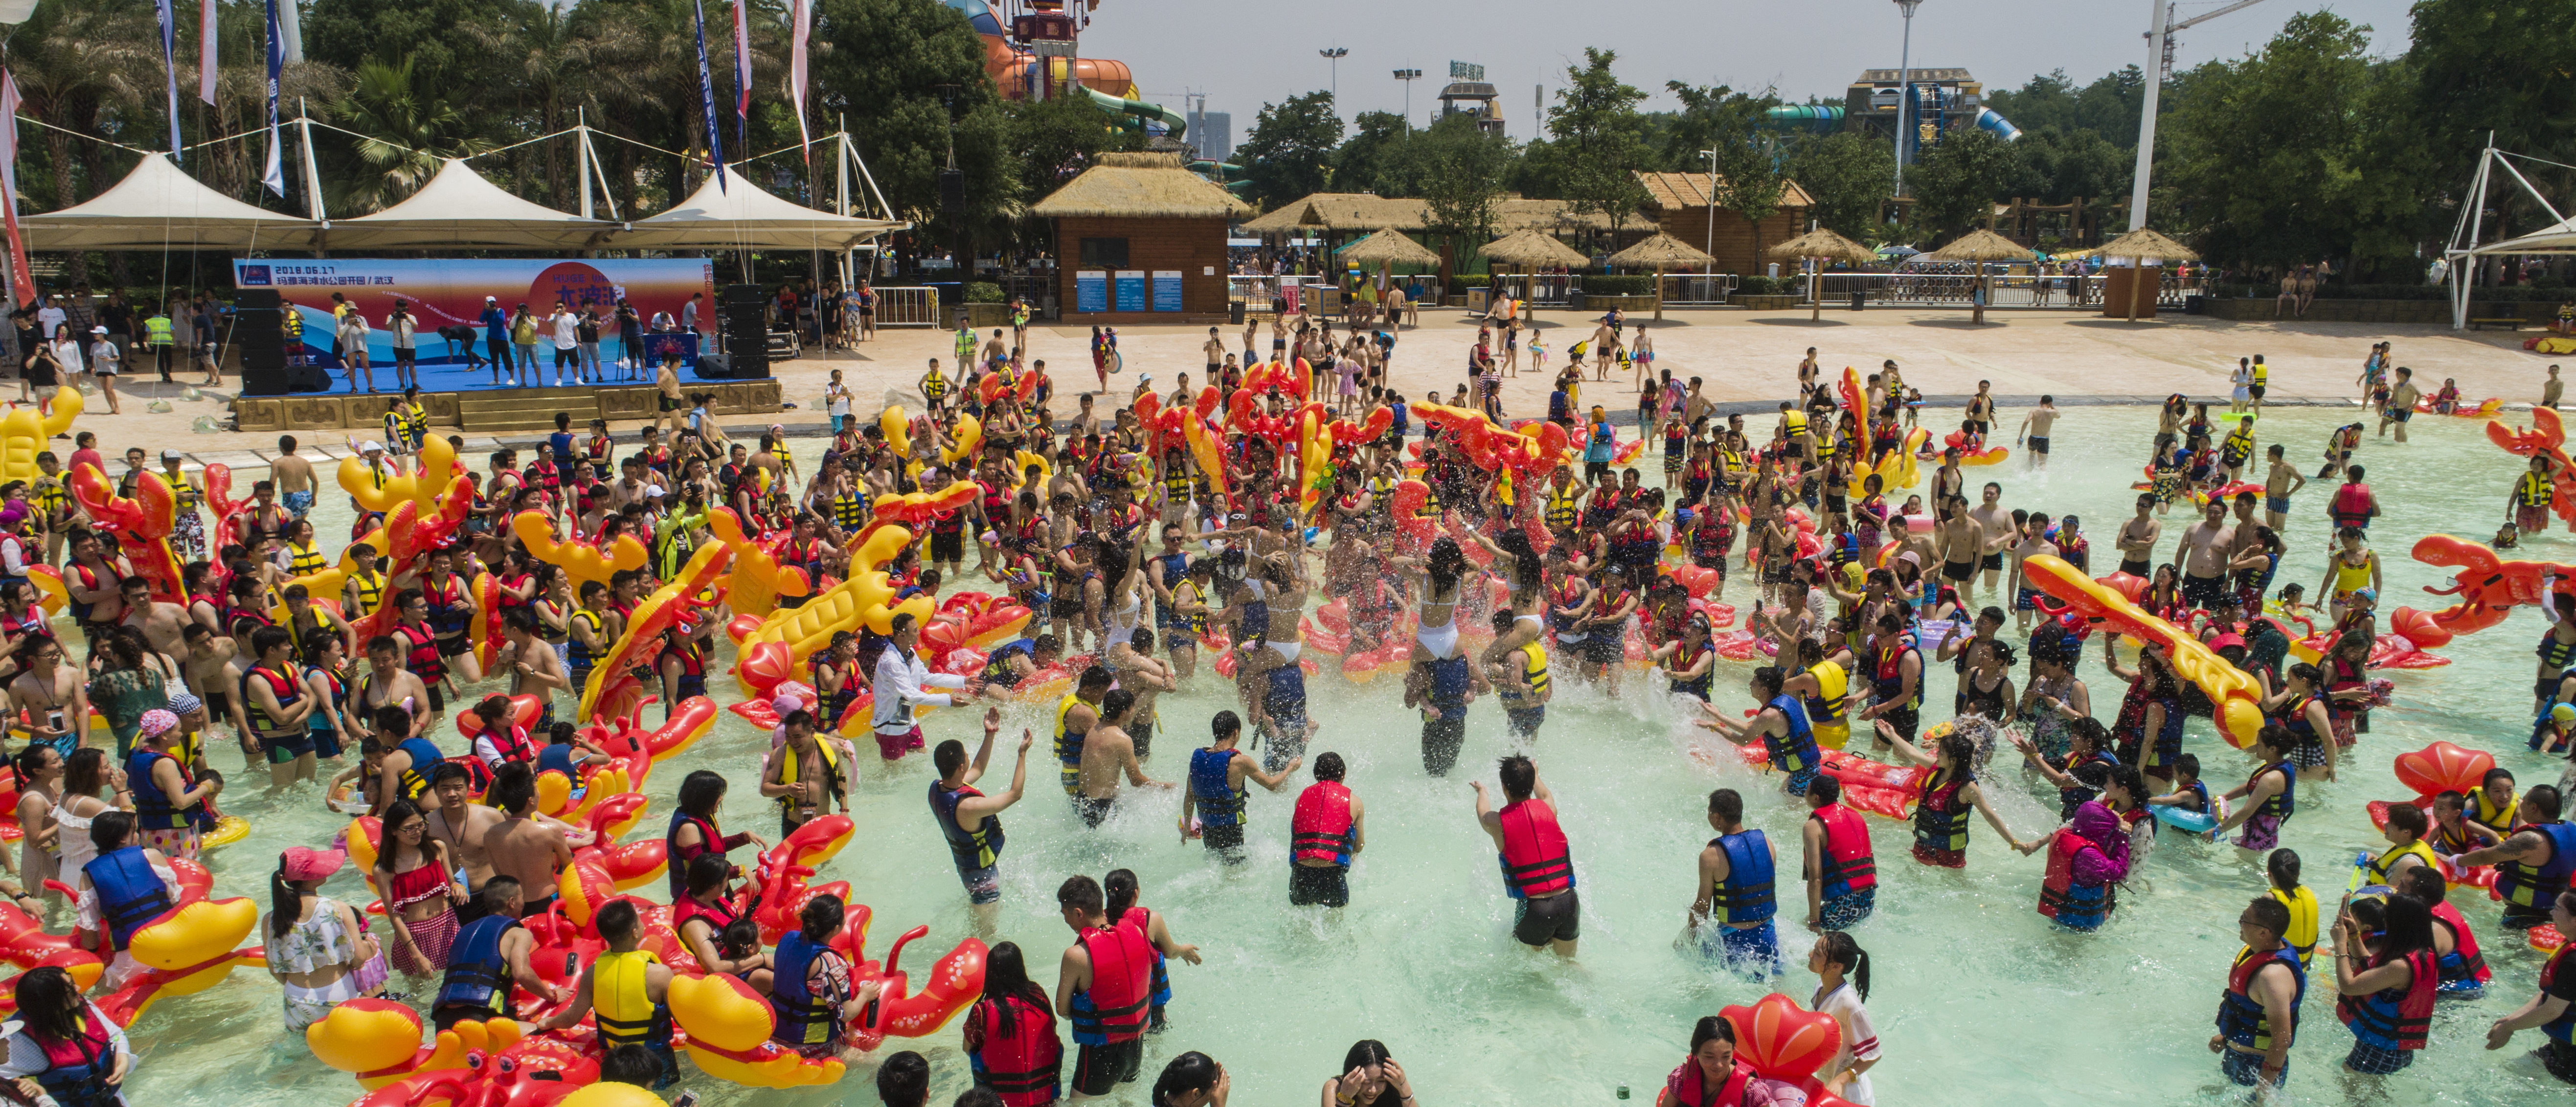 WUHAN, CHINA - JUNE 17: People play with crayfish inflatables at Playa Maya water park on June 17, 2018 in Wuhan, Hubei Province of China. (Photo by VCG/VCG via Getty Images)